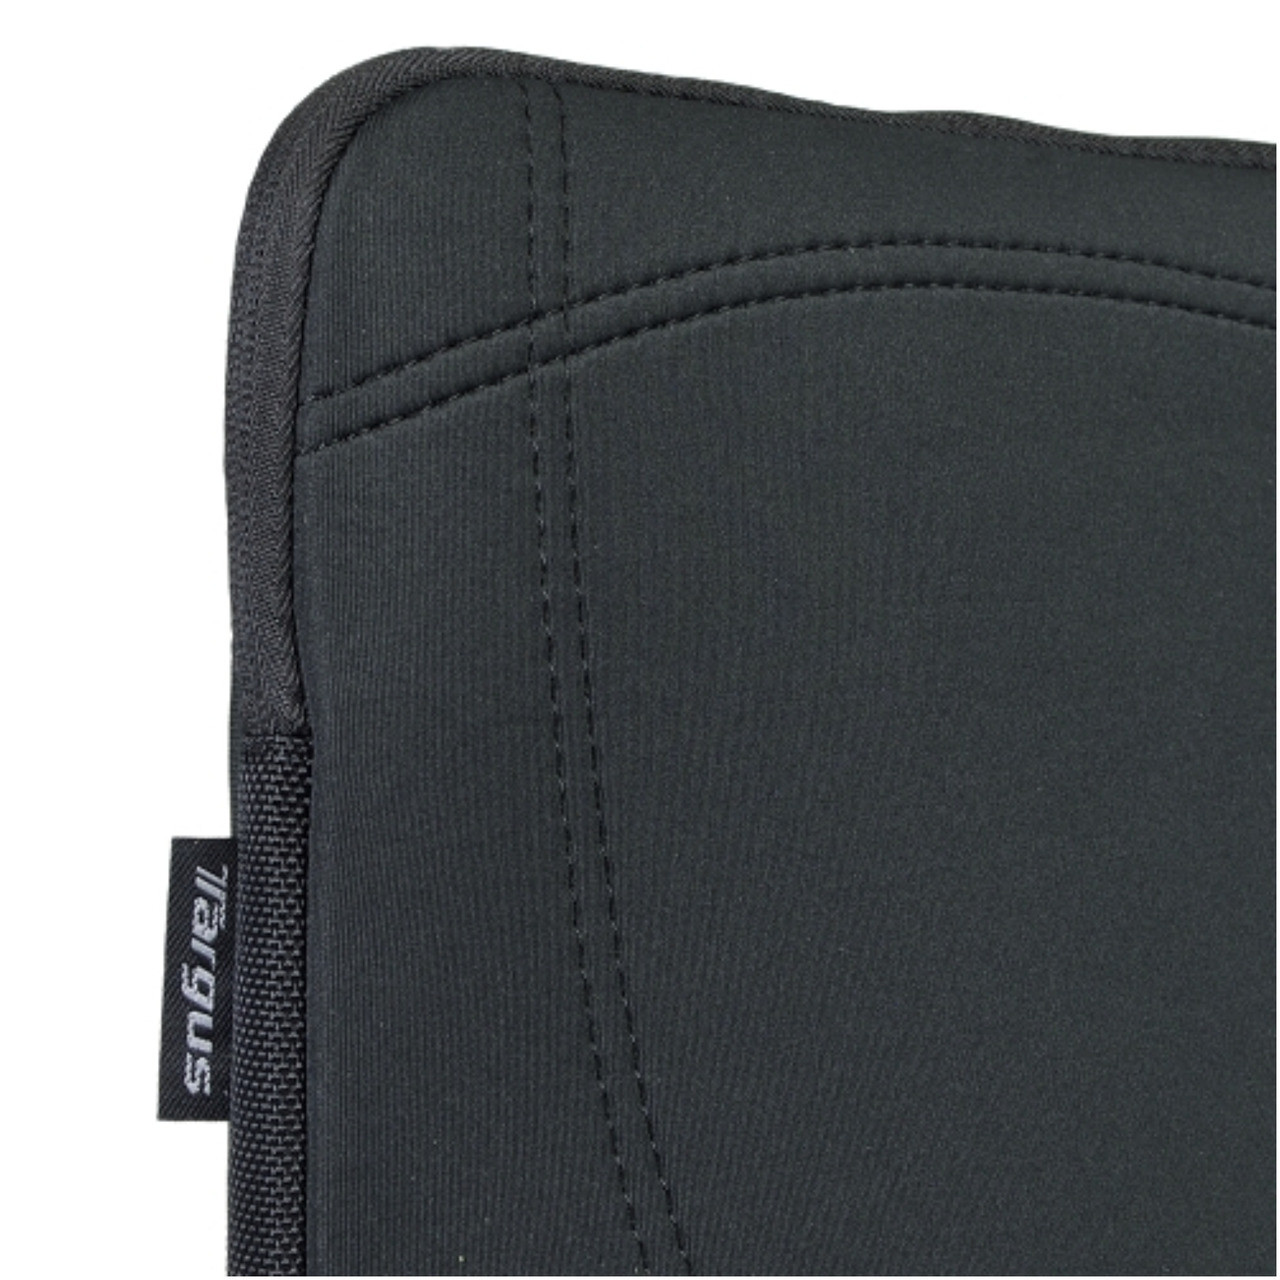 GEEQ Splash Netbook Sleeve for laptops//netbooks up to 13.3-inch